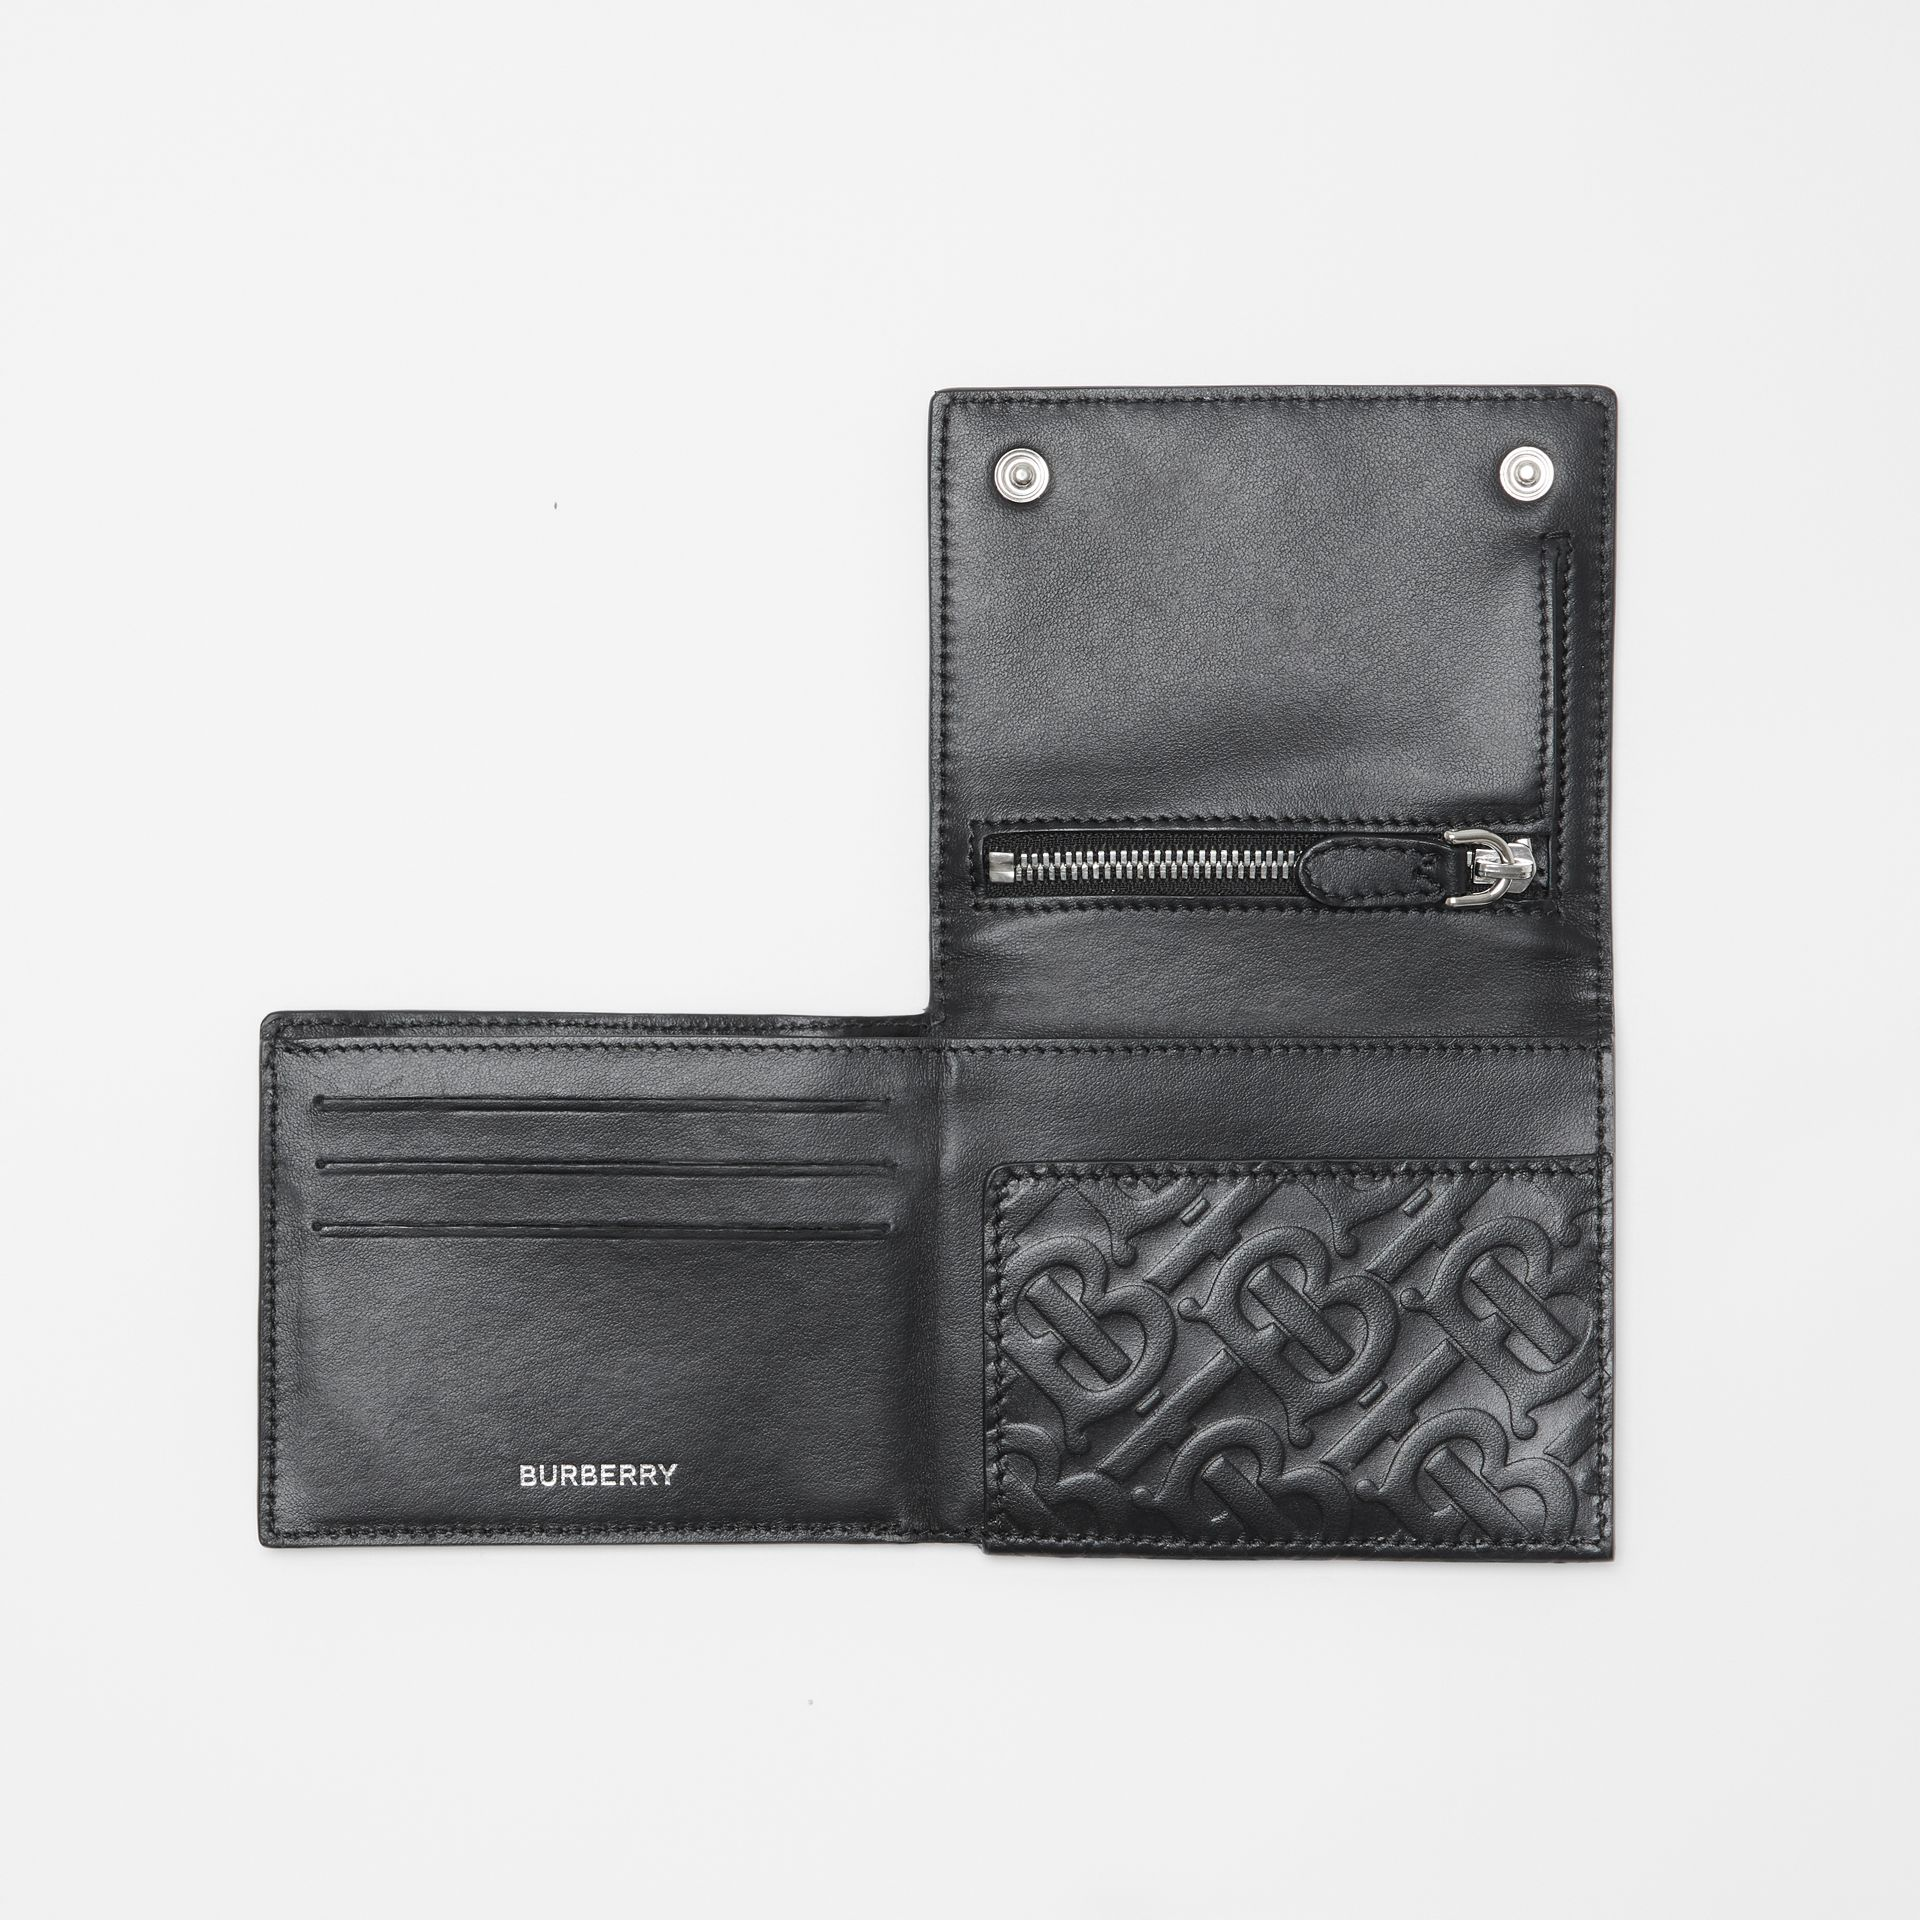 Monogram Embossed Leather Trifold Wallet in Black - Men | Burberry - gallery image 2